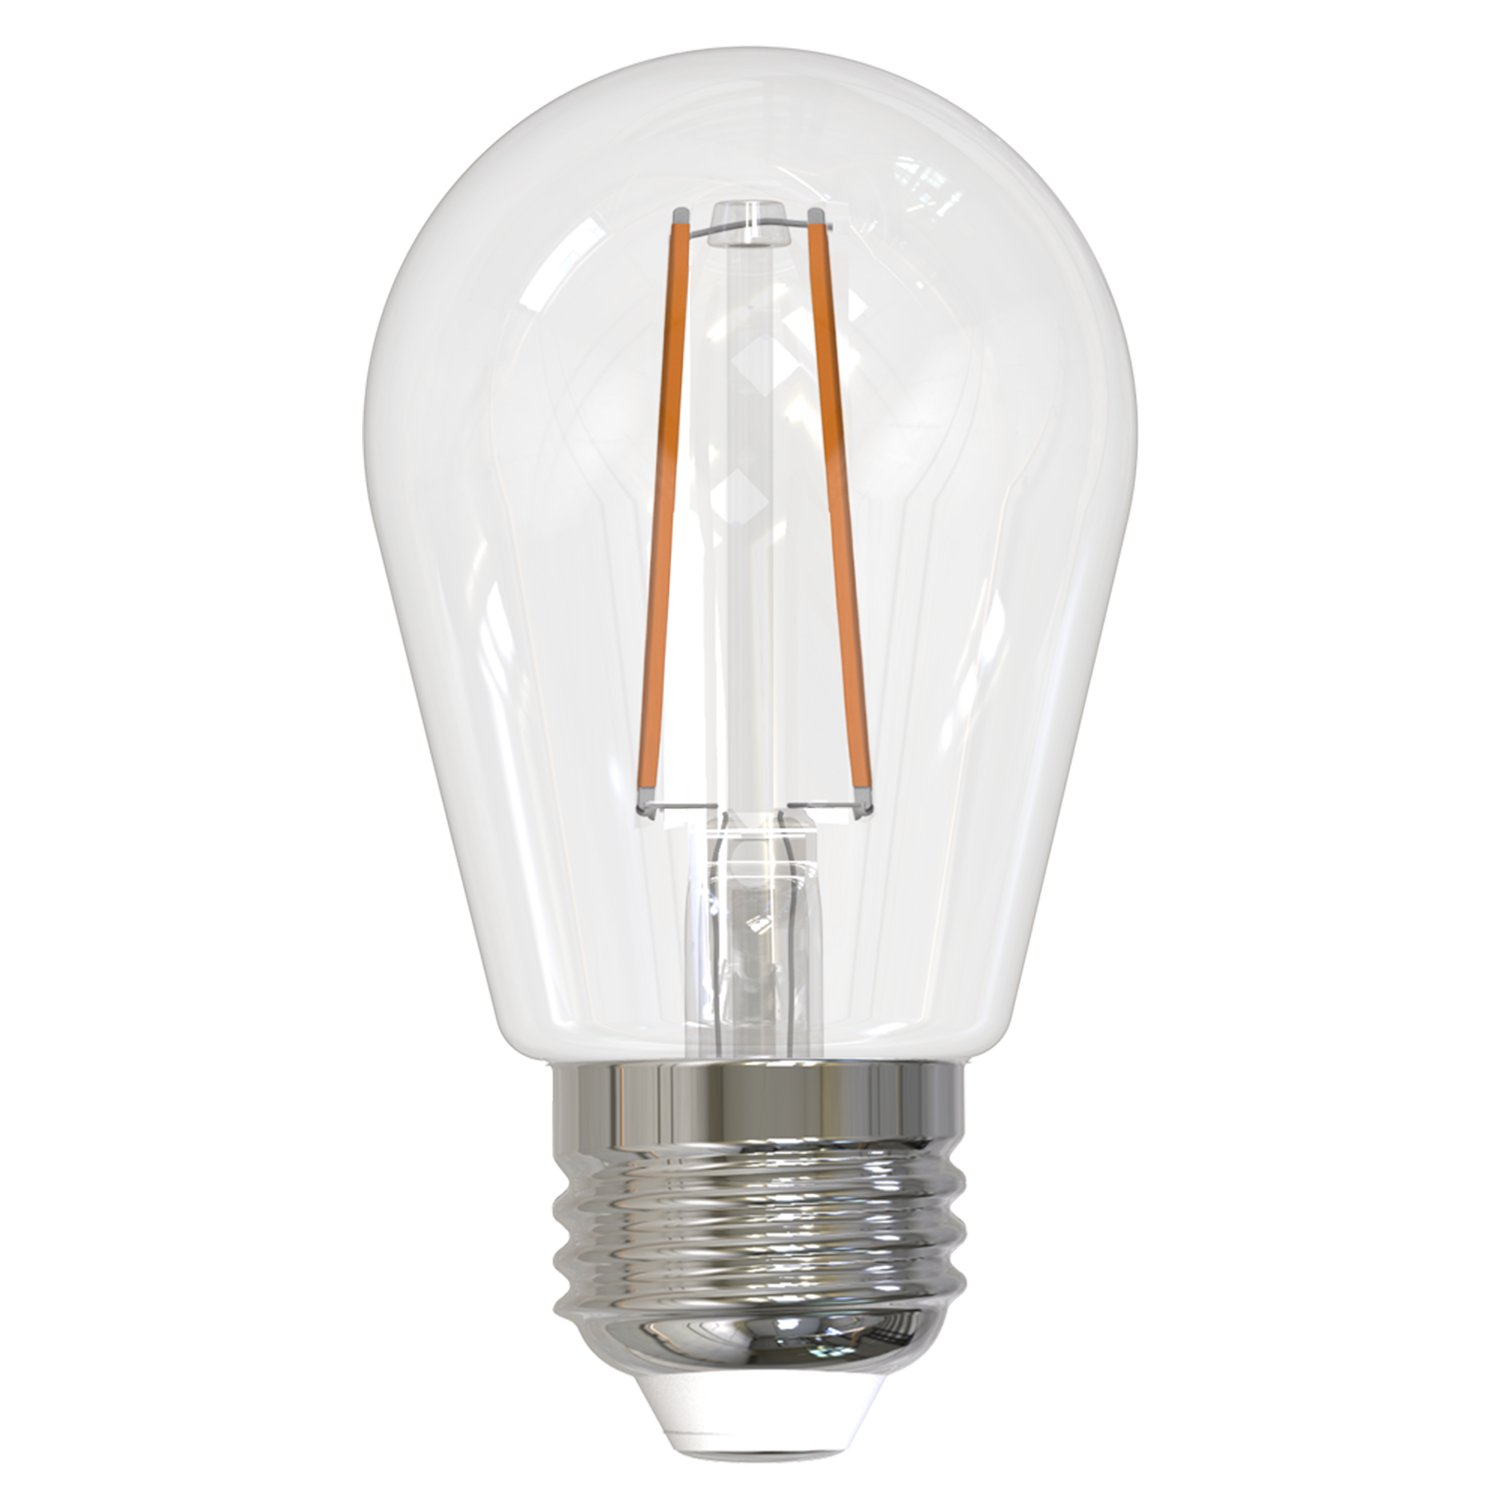 5 Pack Green Base with Medium Screw Bulbrite 861151 35 W Non-Dimmable S14 Shape LED Bulb Incandescent E26